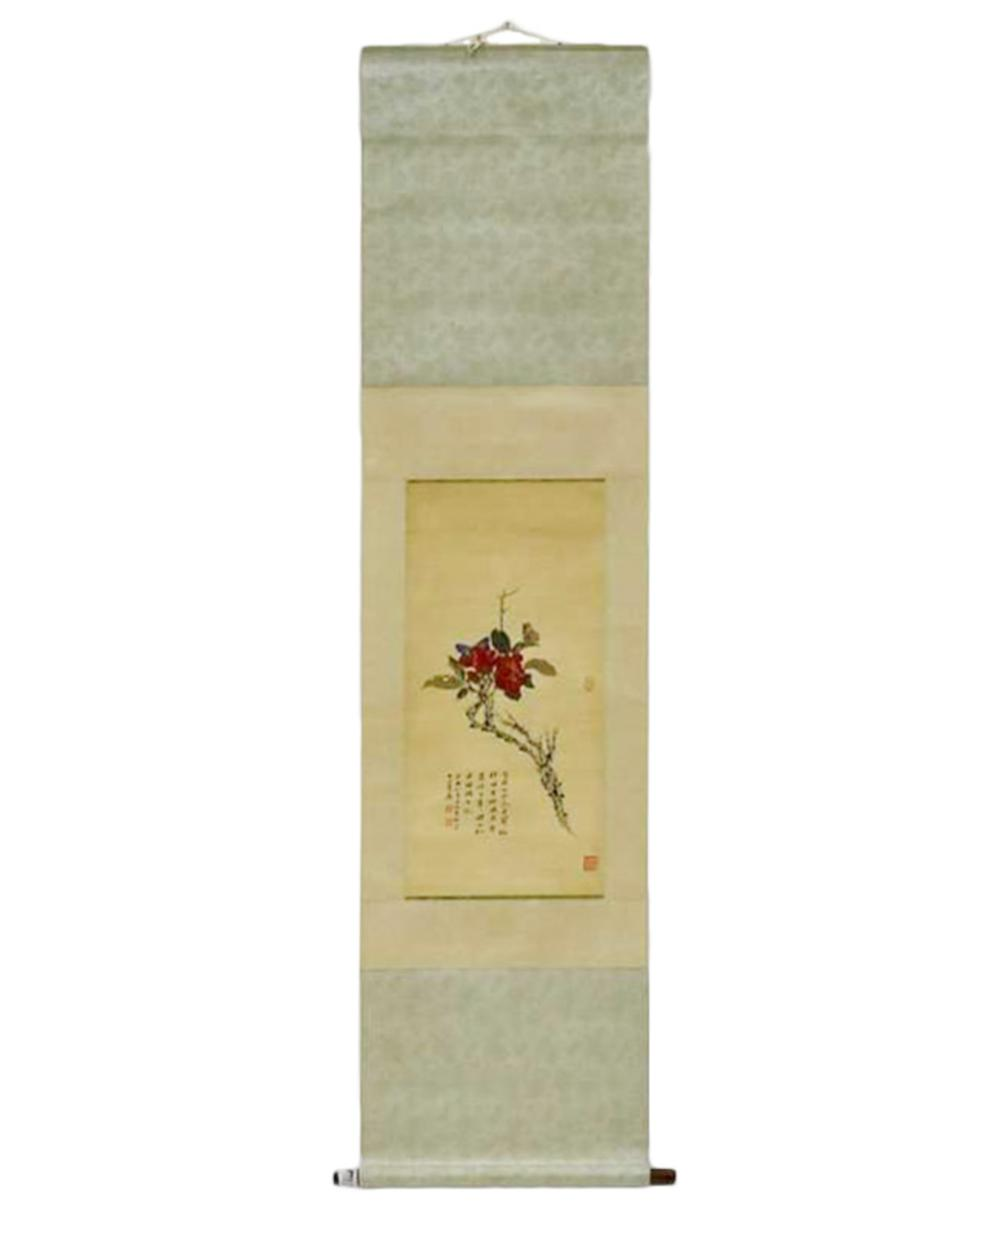 CHINESE PAINTING SCROLL OF FLOWER BLOOM